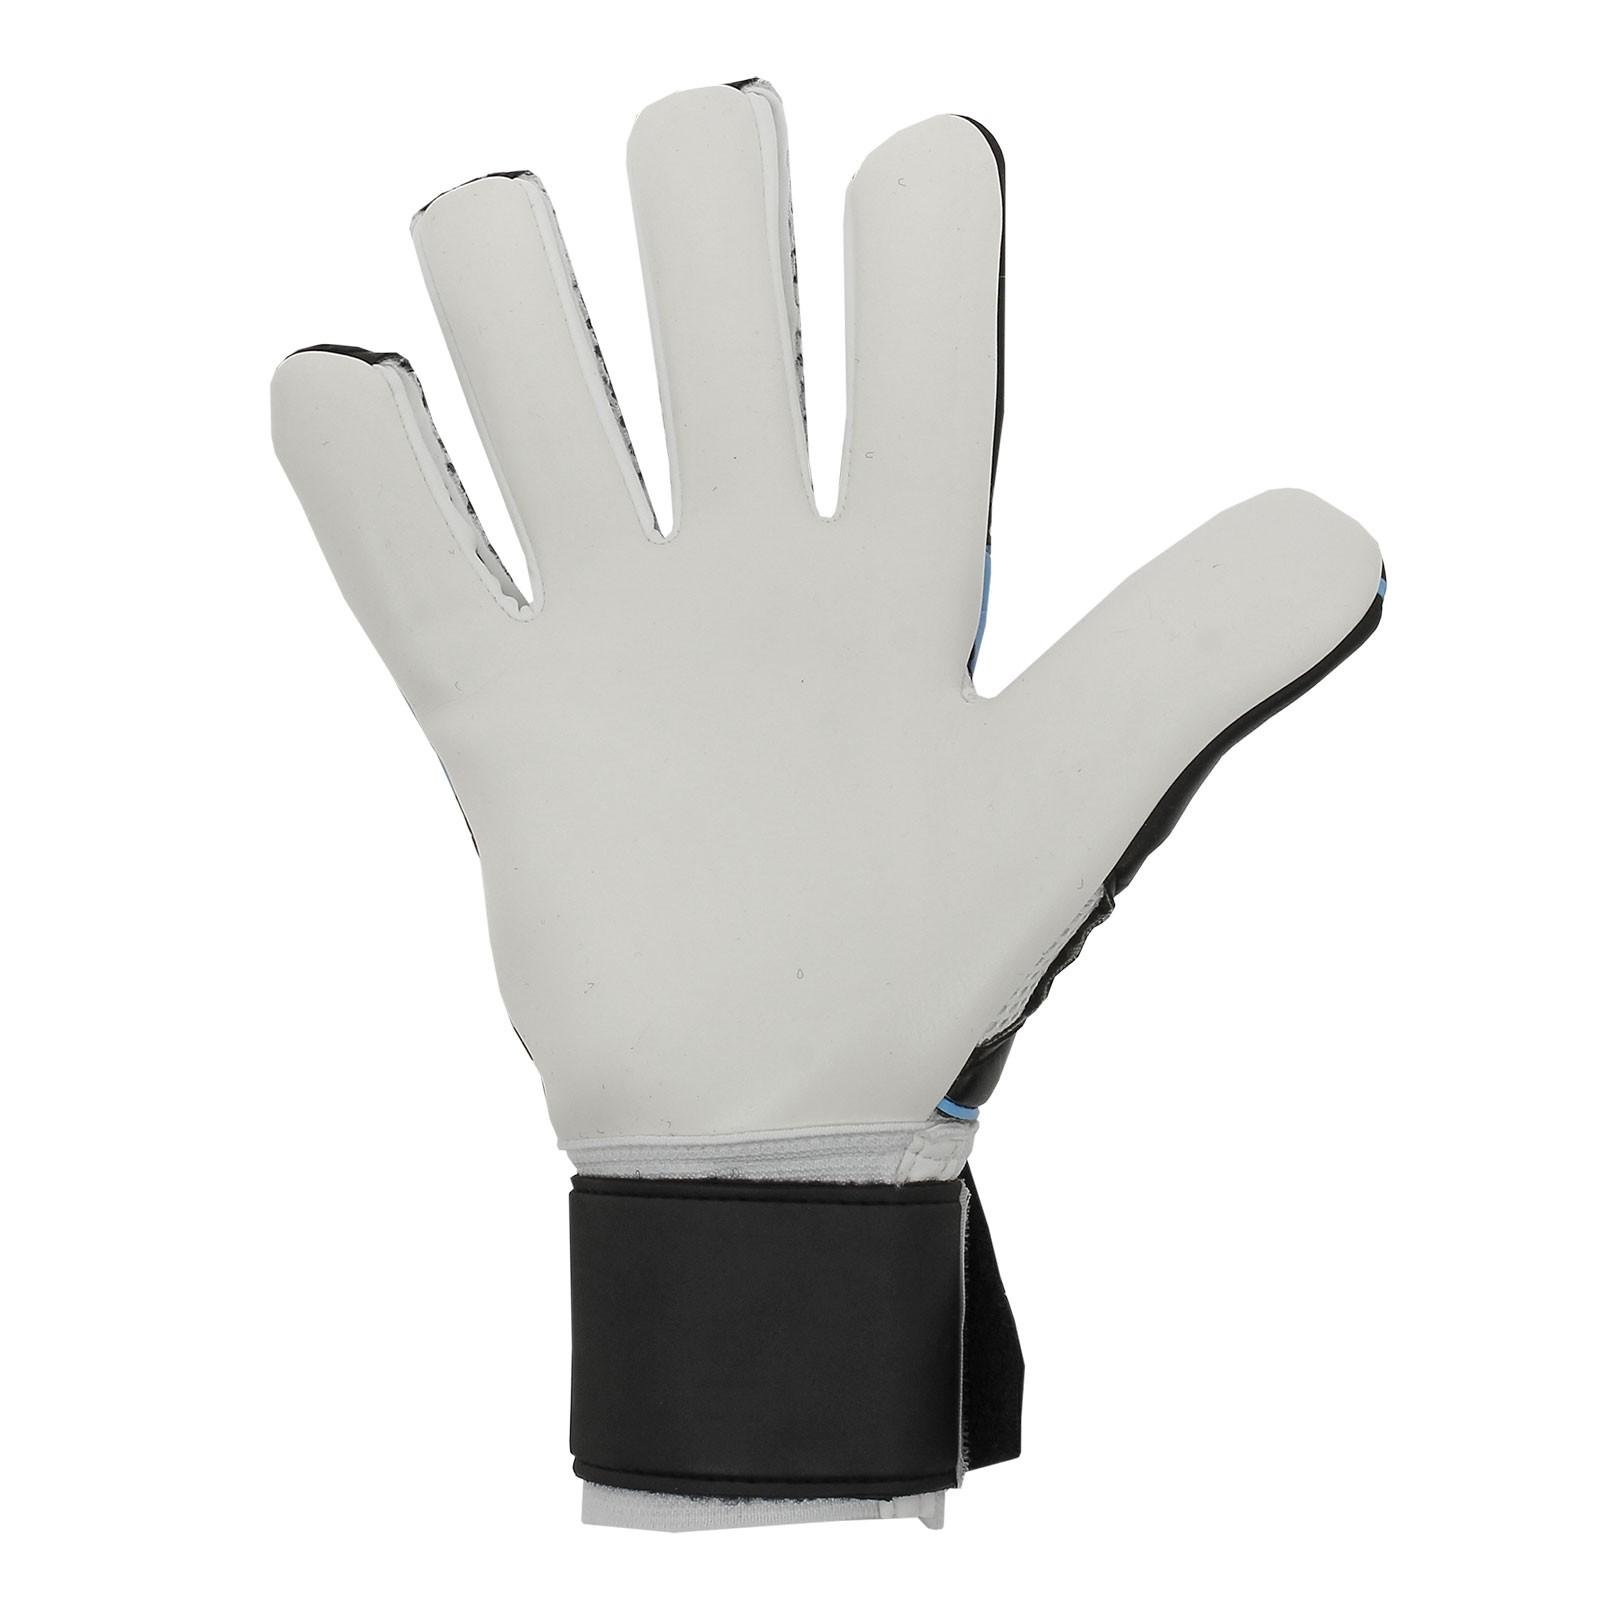 Uhlsport-SOFT-HN-Competition-Gant-de-Gardien-Keeper-Gloves-Bleu-noir miniature 6